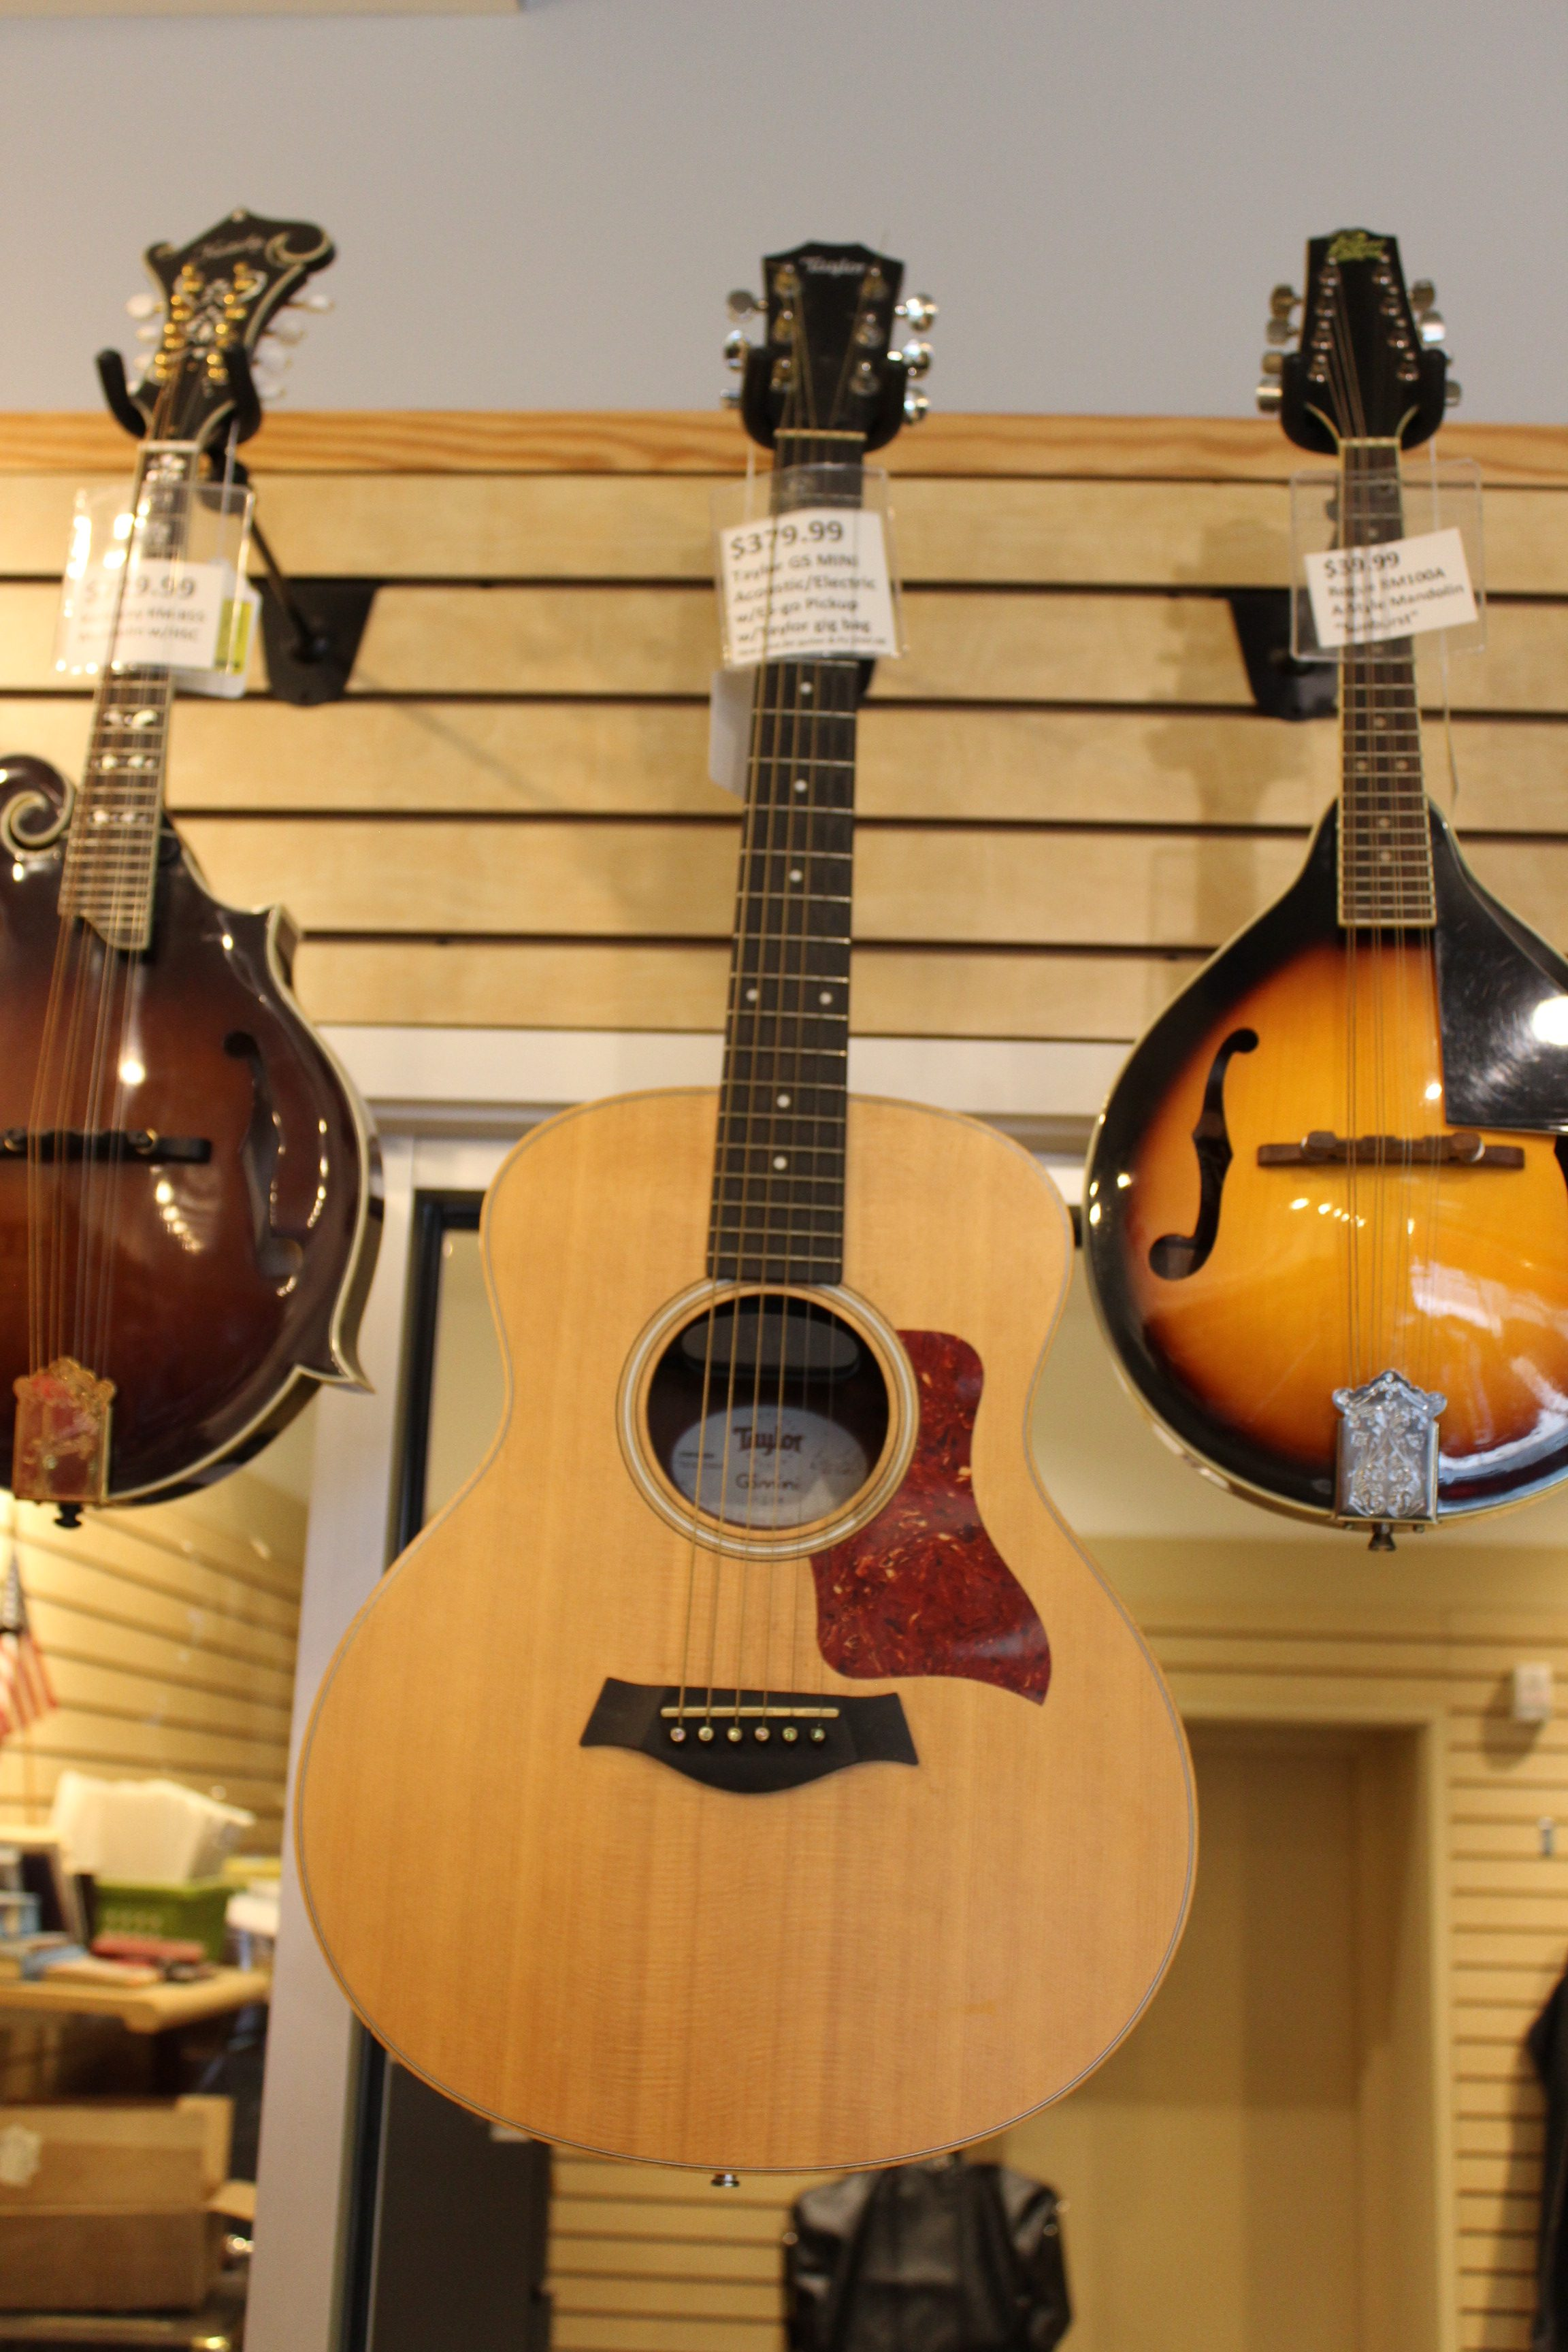 Taylor Gs Mini Used : taylor gs mini acoustic electric guitar used ted 39 s pawn shop ~ Hamham.info Haus und Dekorationen